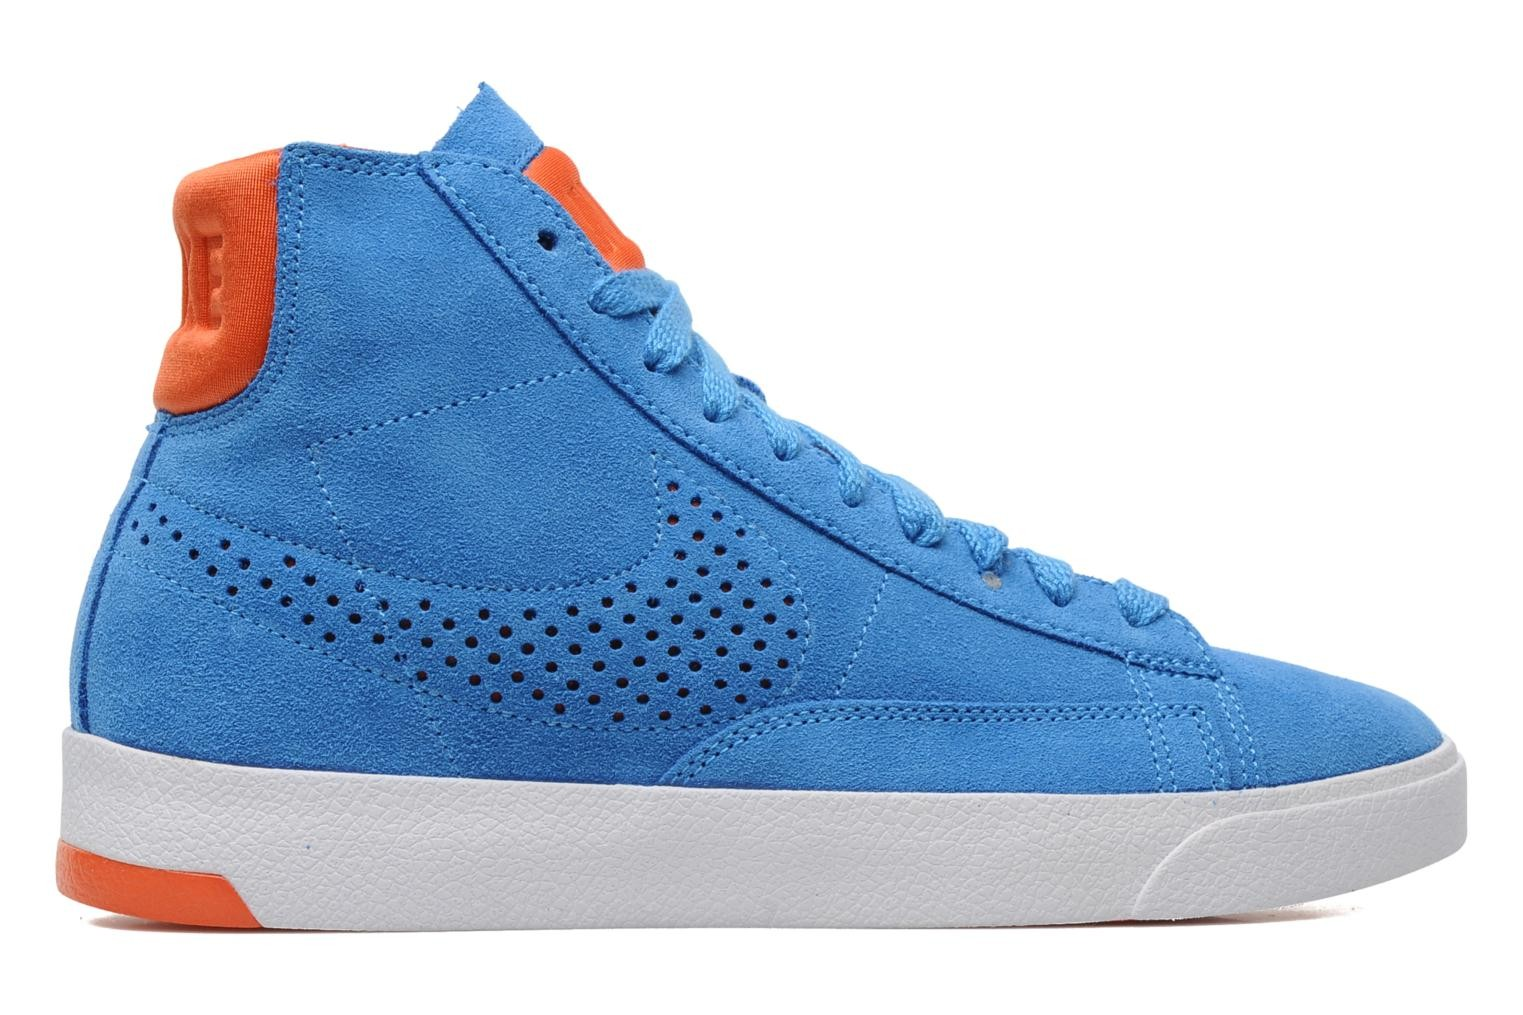 Nike Blazer Lux Blue Hero Team Orange Men's Trainers